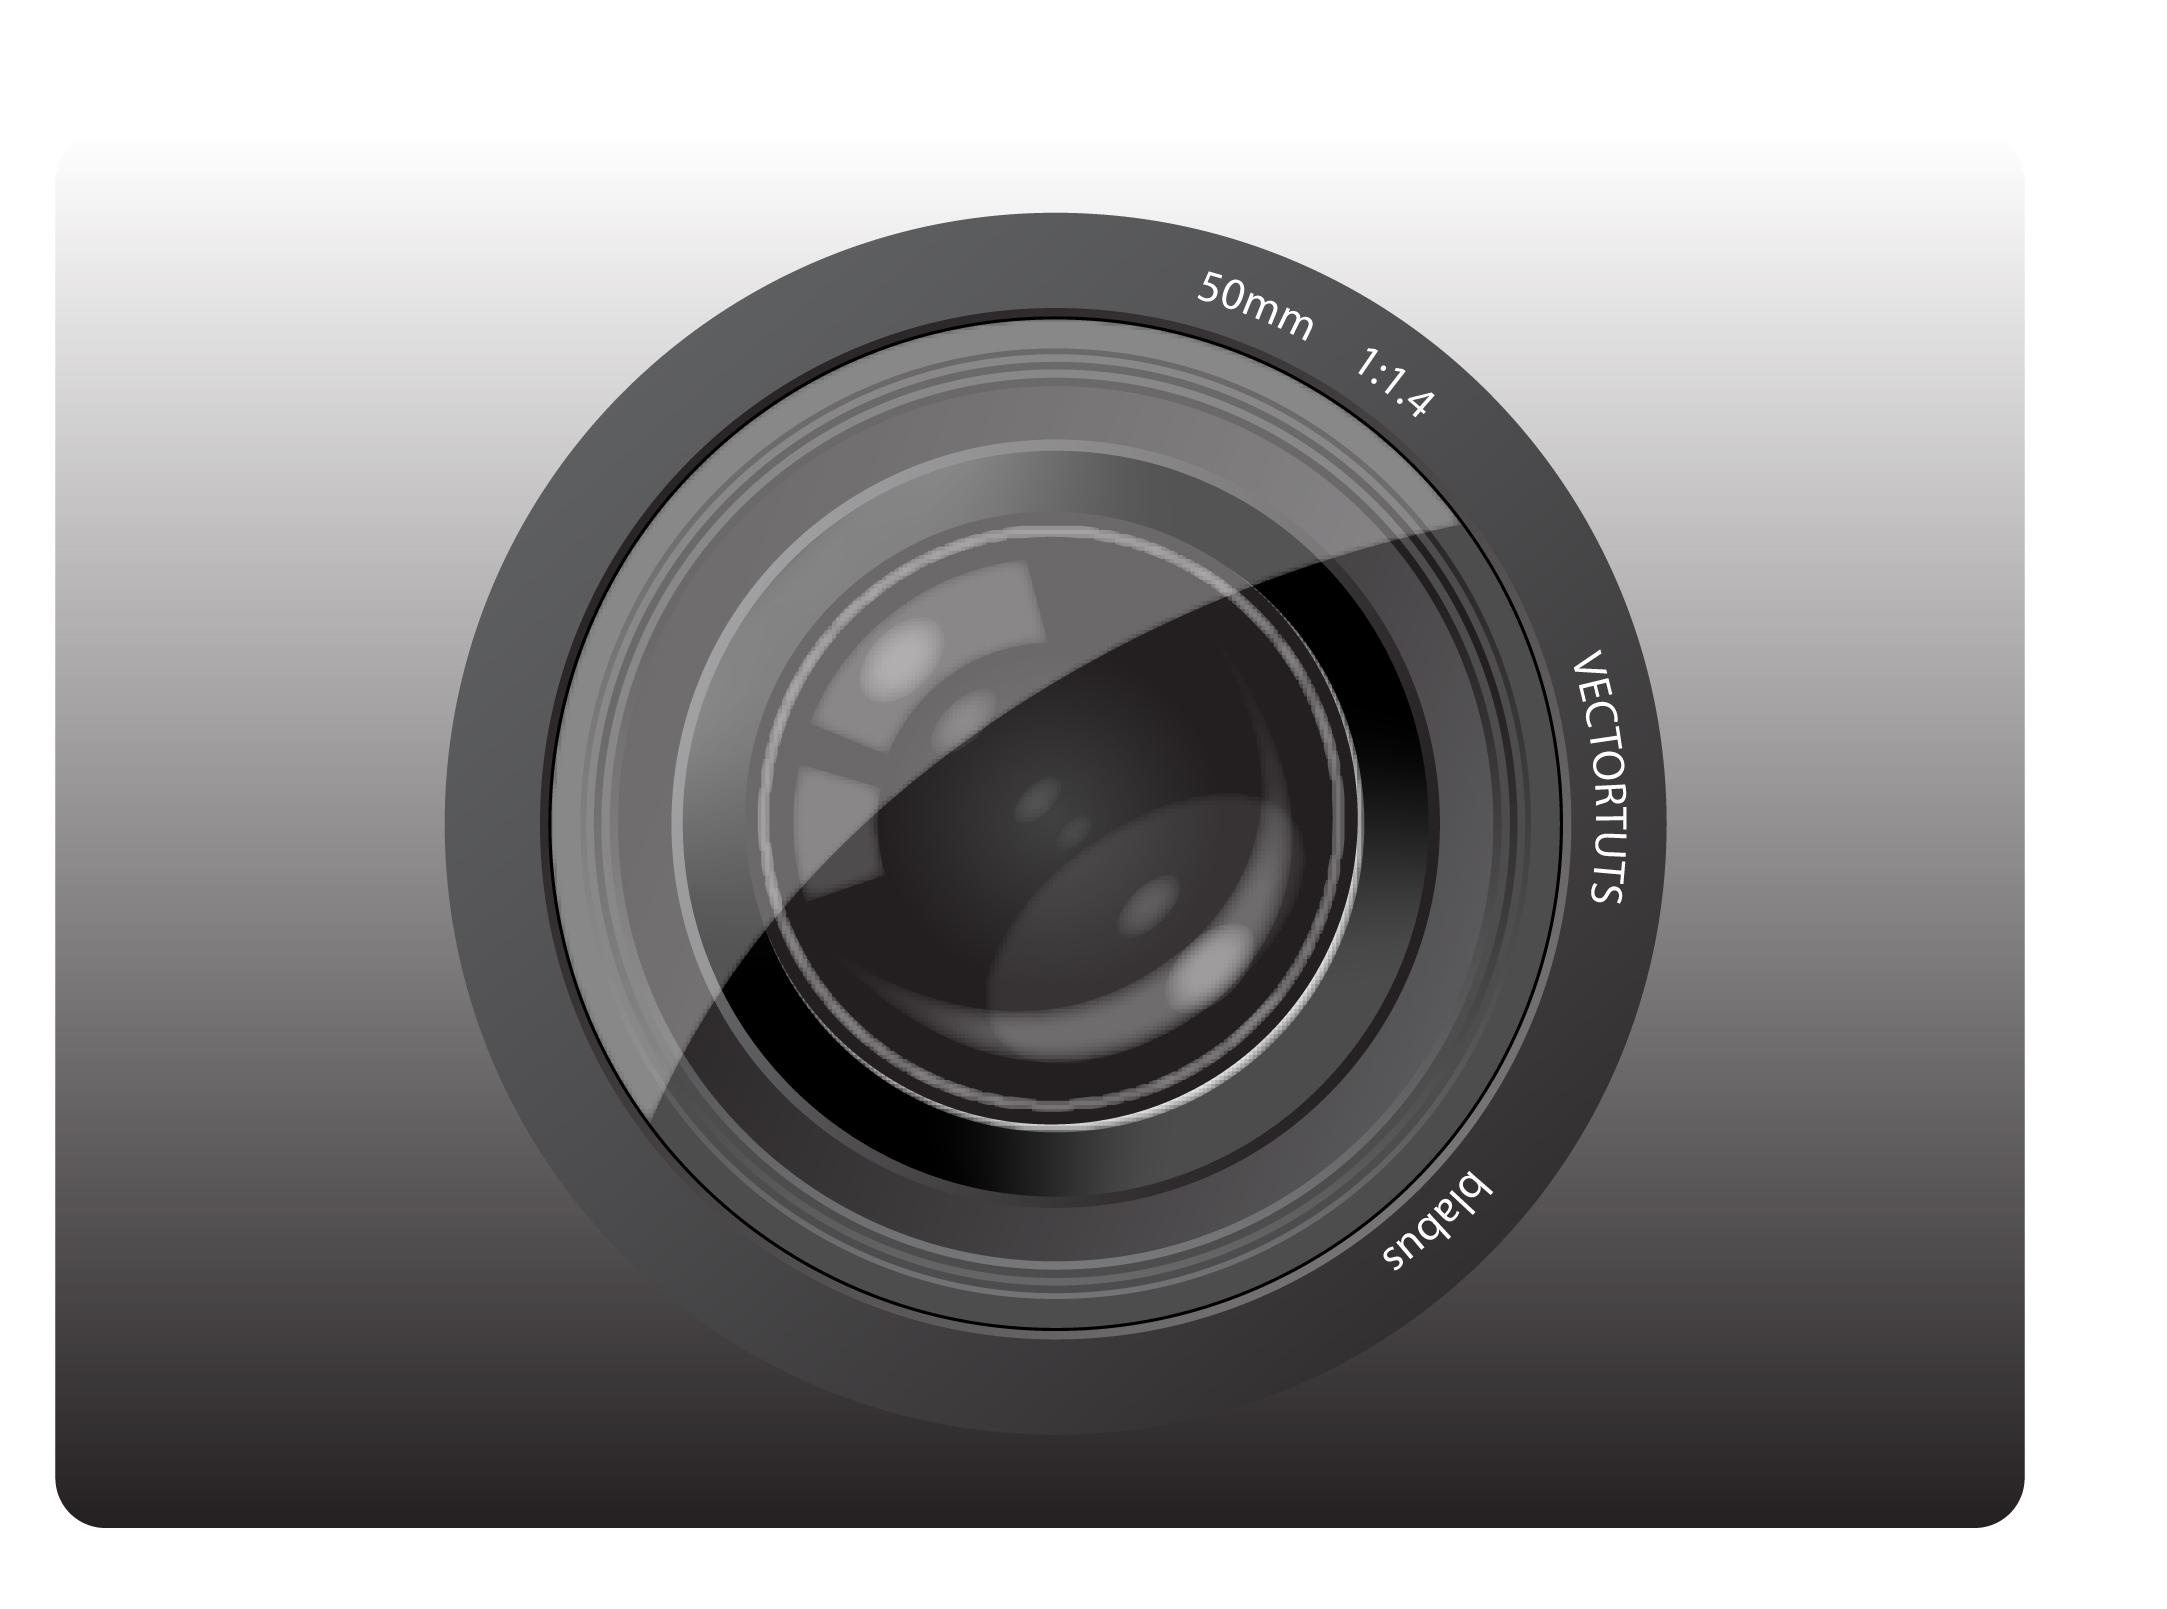 Camera Lens Diagram Related Keywords Suggestions Camera Lens